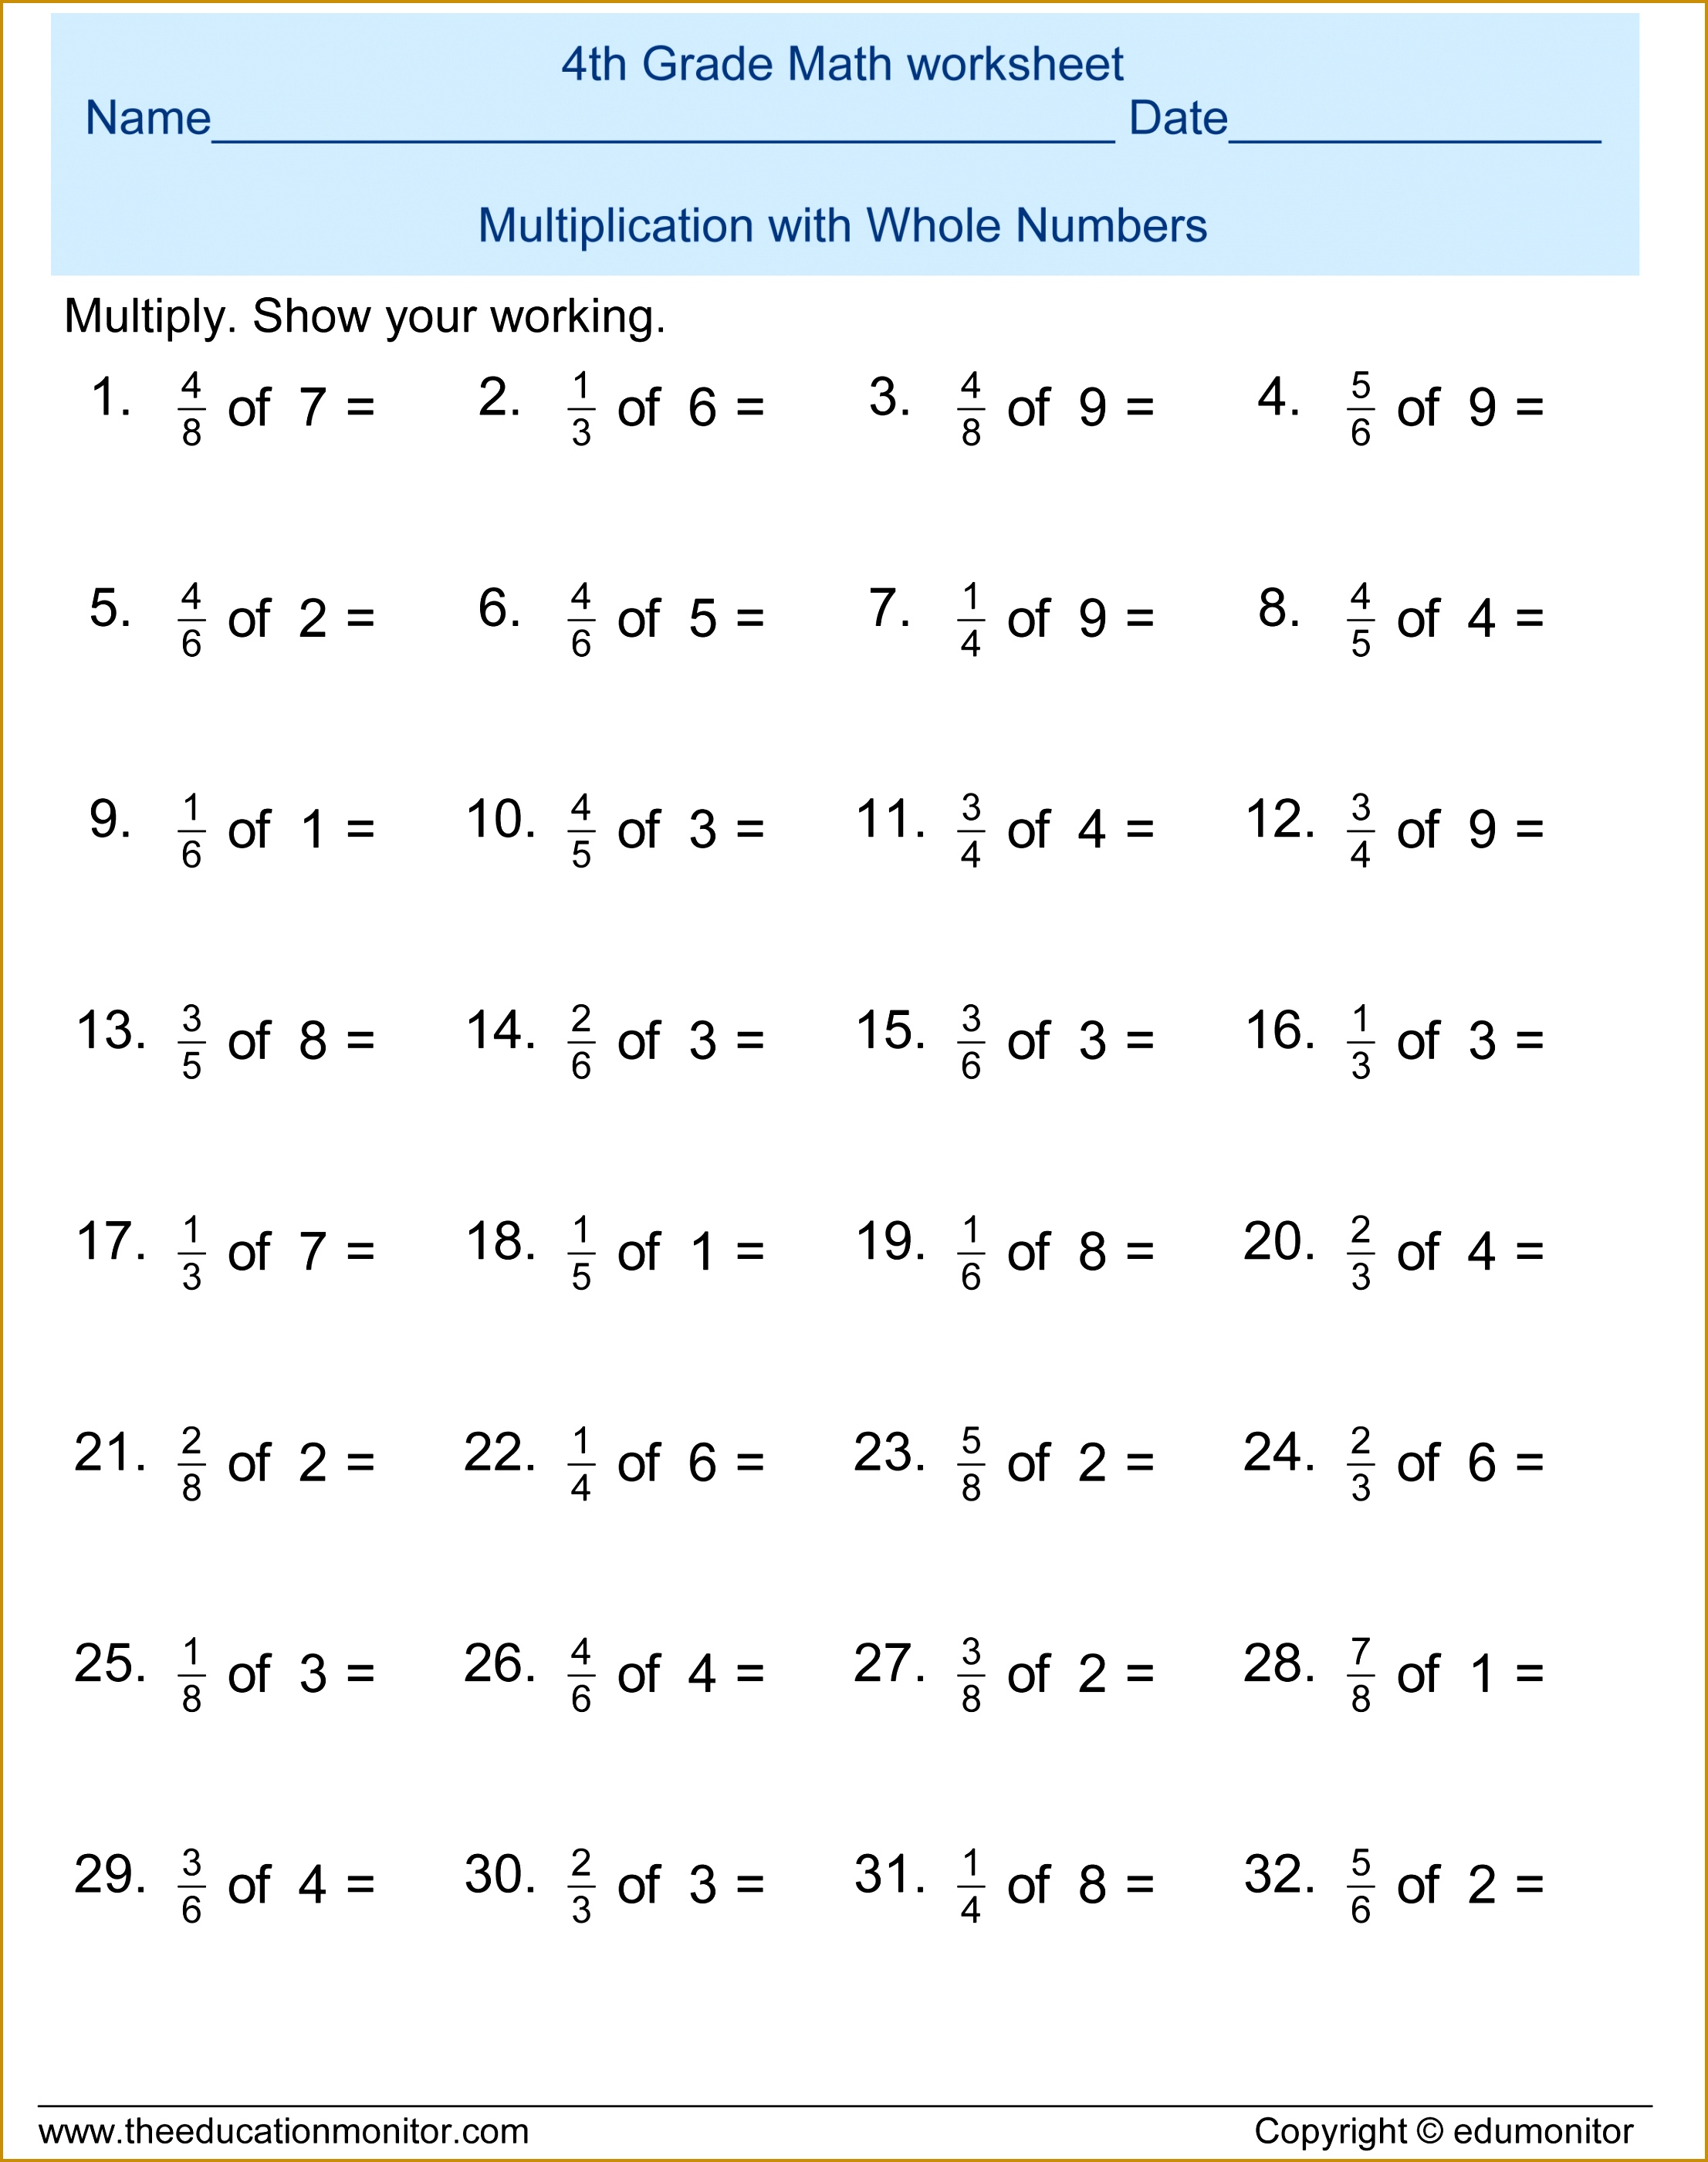 Adding And Subtracting Fractions Worksheets Worksheet 5th Grade Fraction L Dissimilar With Answers mon Core Add 28012213